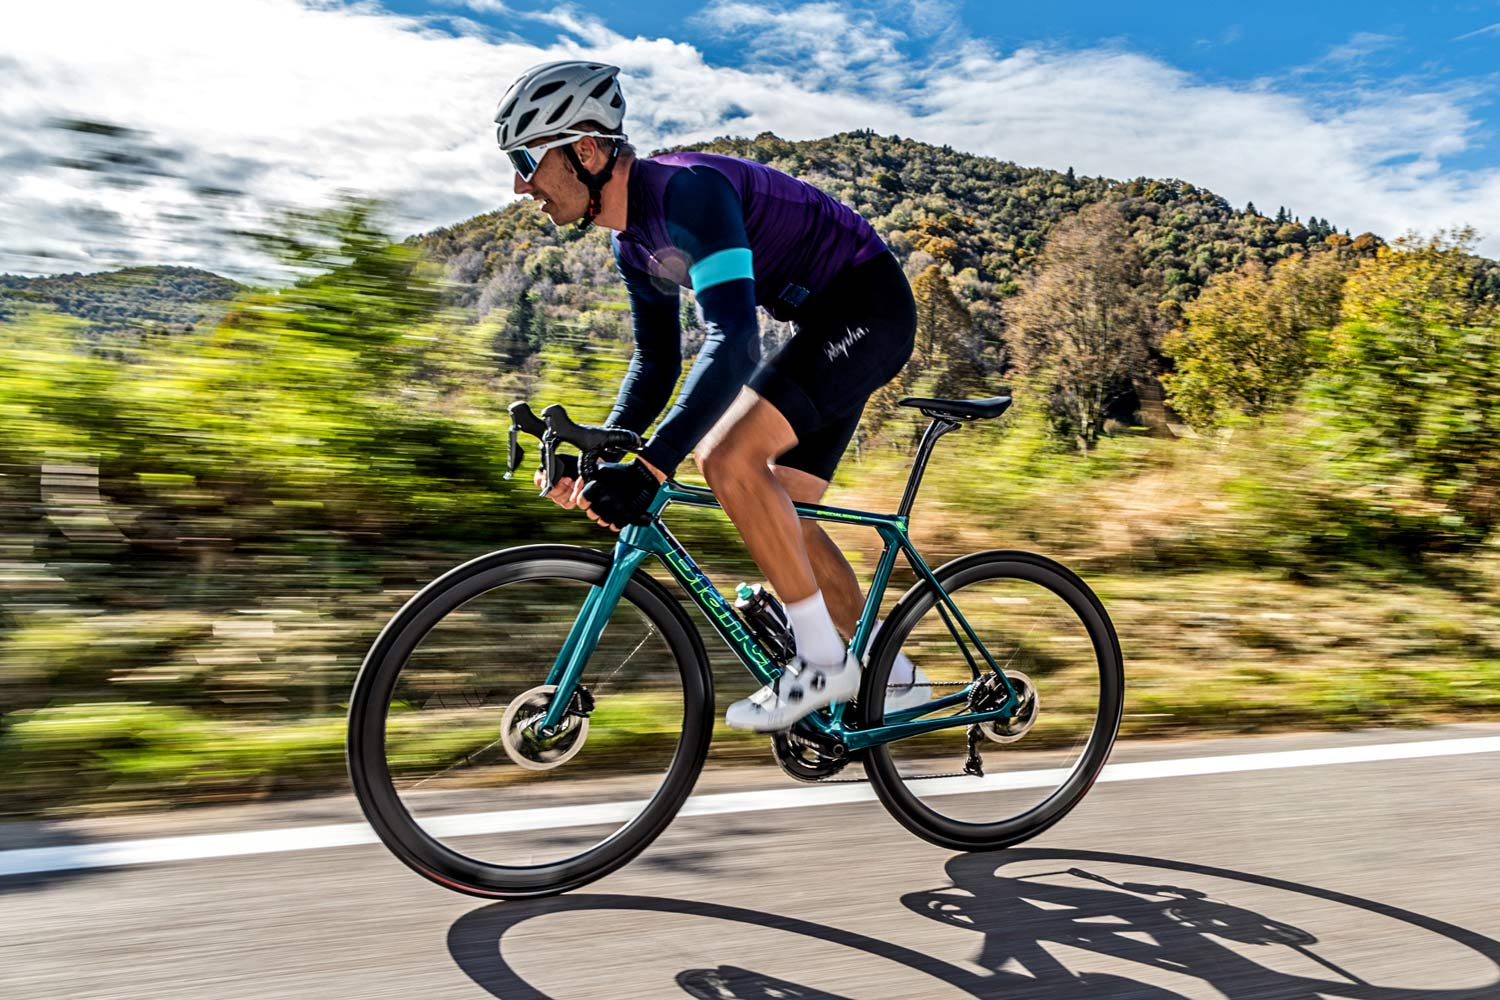 2021 Bianchi Specialissima CV goes lightweight in modern disc brake road race update